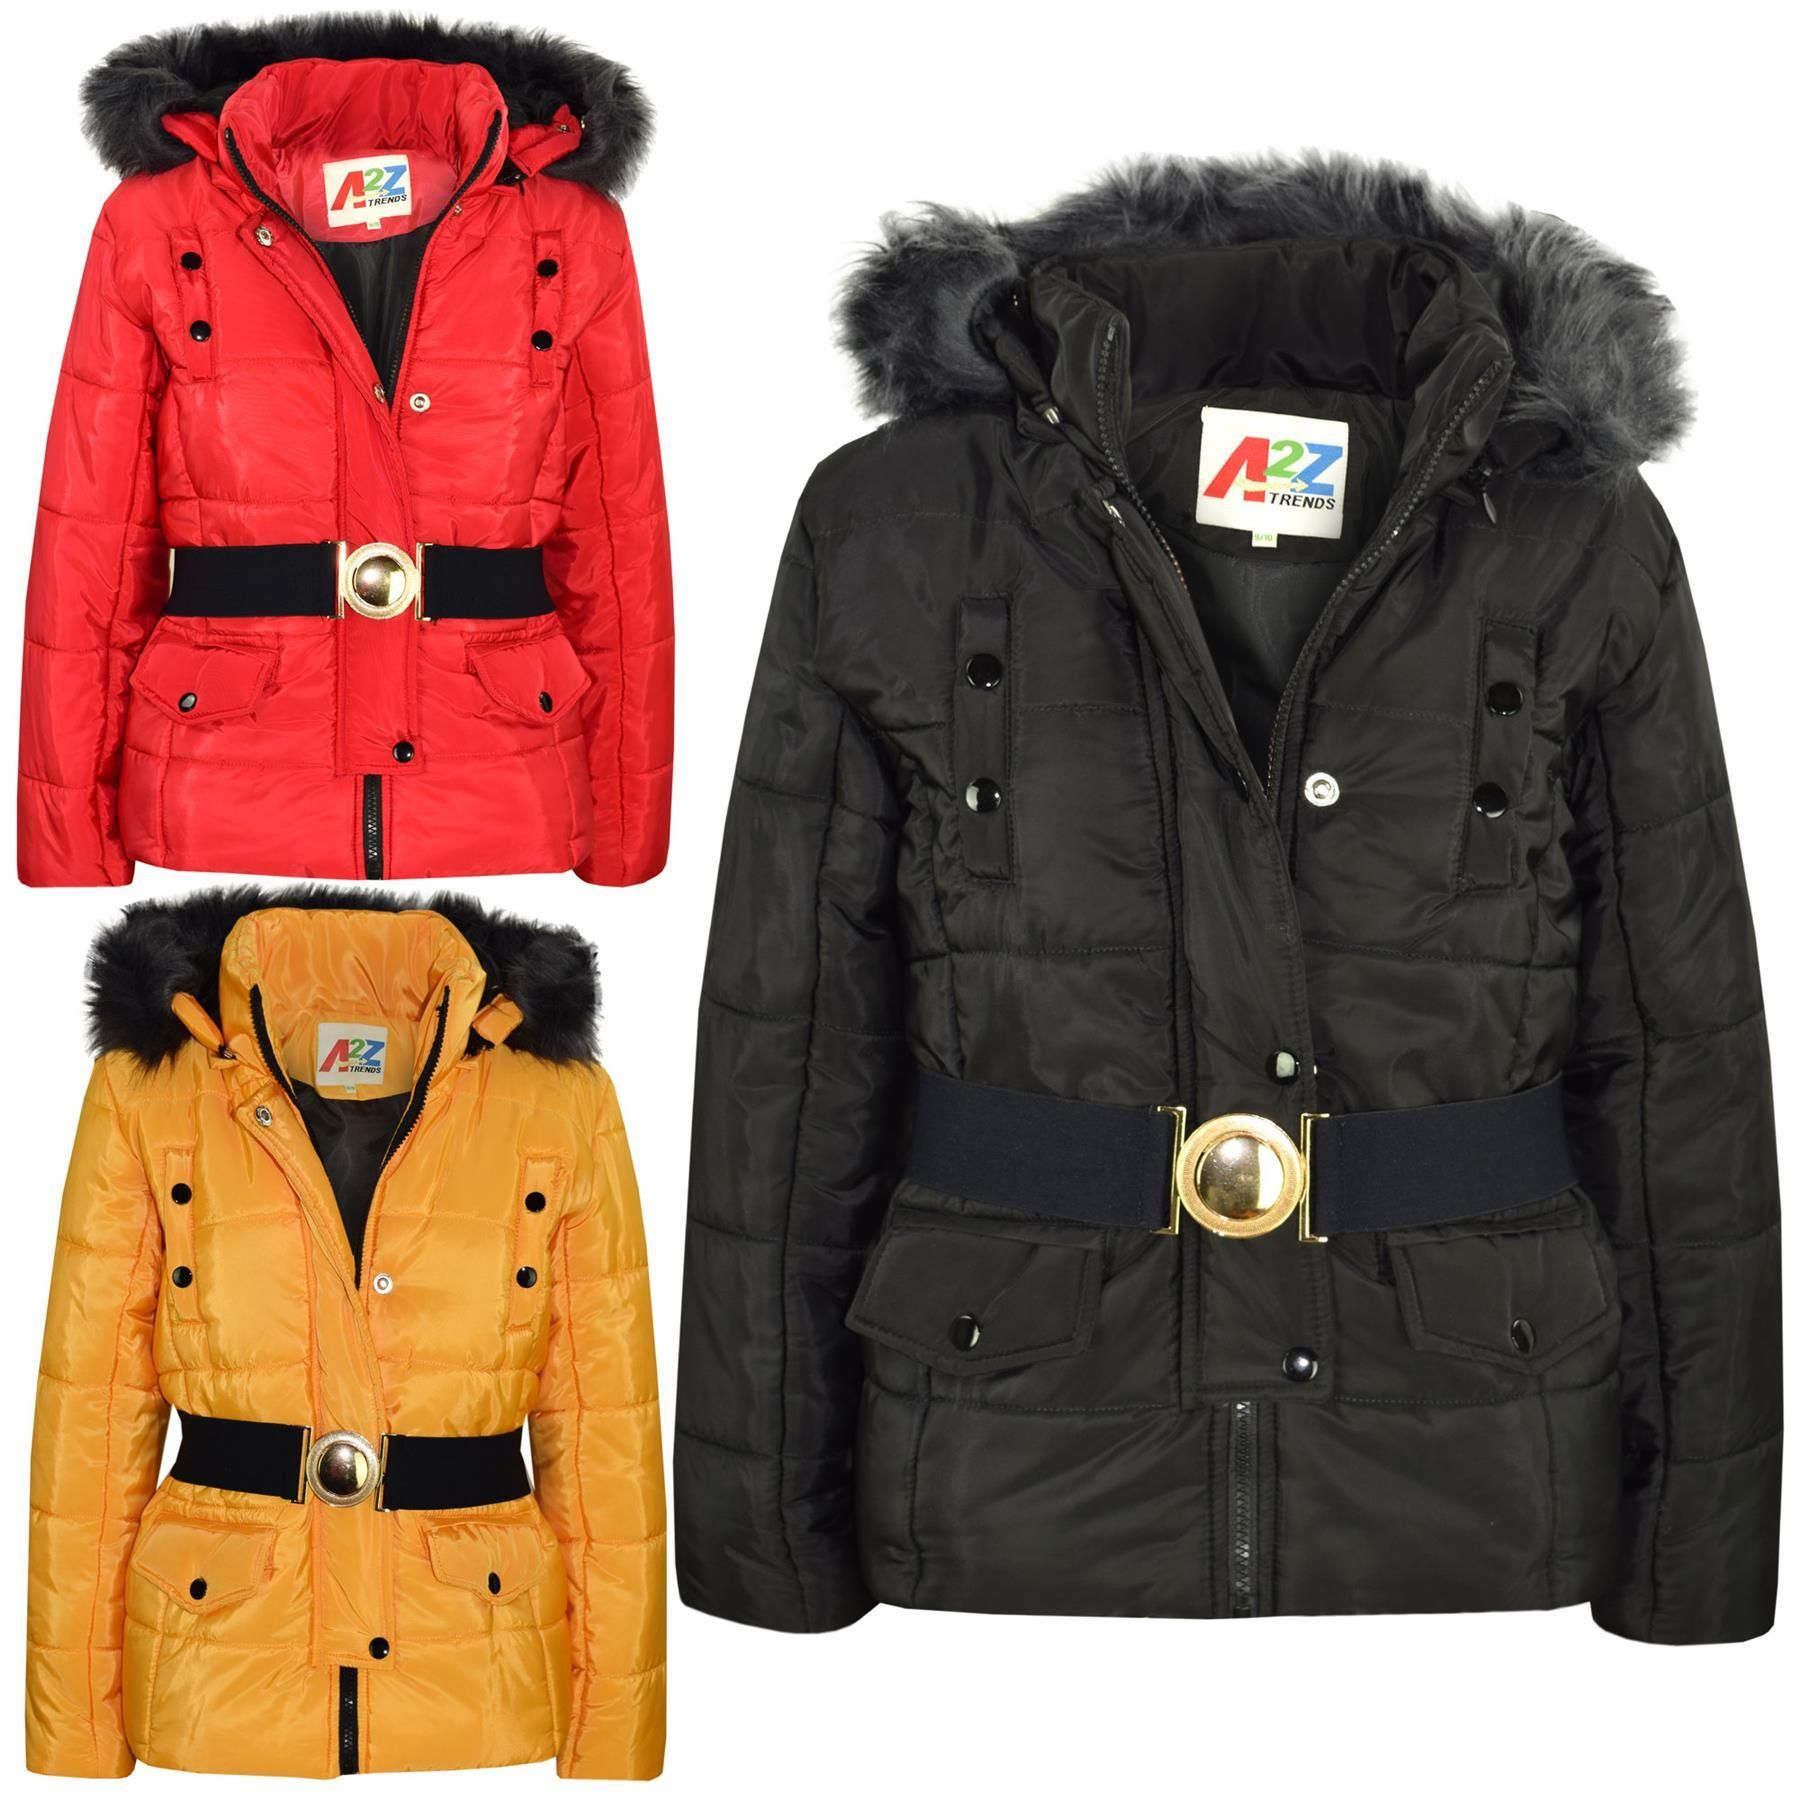 A2Z 4 Kids Kids Girls Puffer Jackets Designer Black Faux Fur Hooded Stylish Padded Zipped Belted Top Fit Jacket Warm Coats New Age 5 6 7 8 9 10 11 12 13 Years